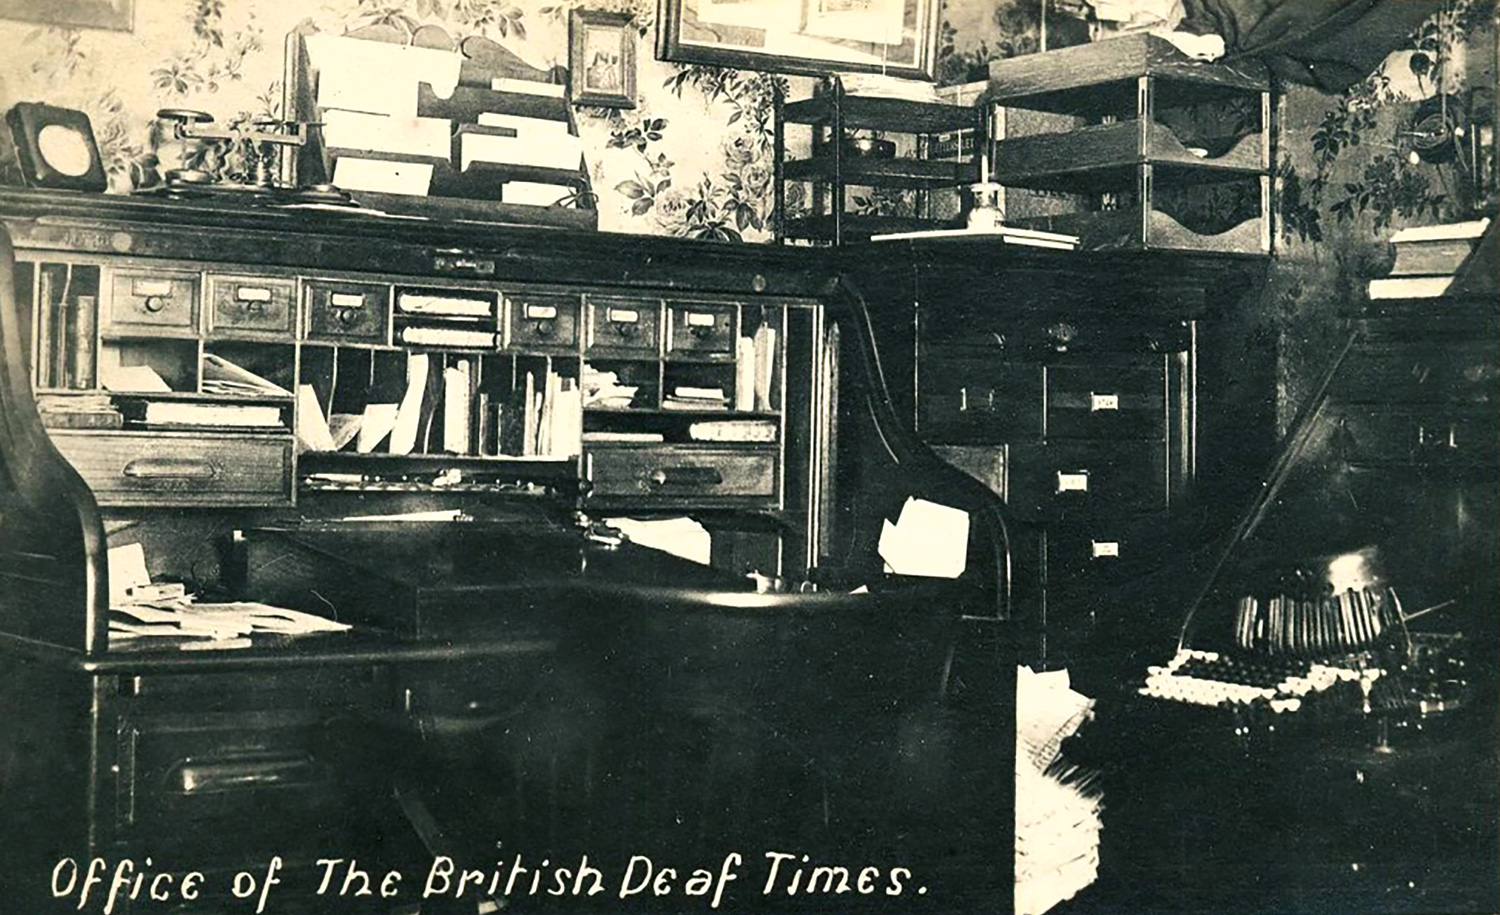 The office of The British Deaf Times in early 1900's